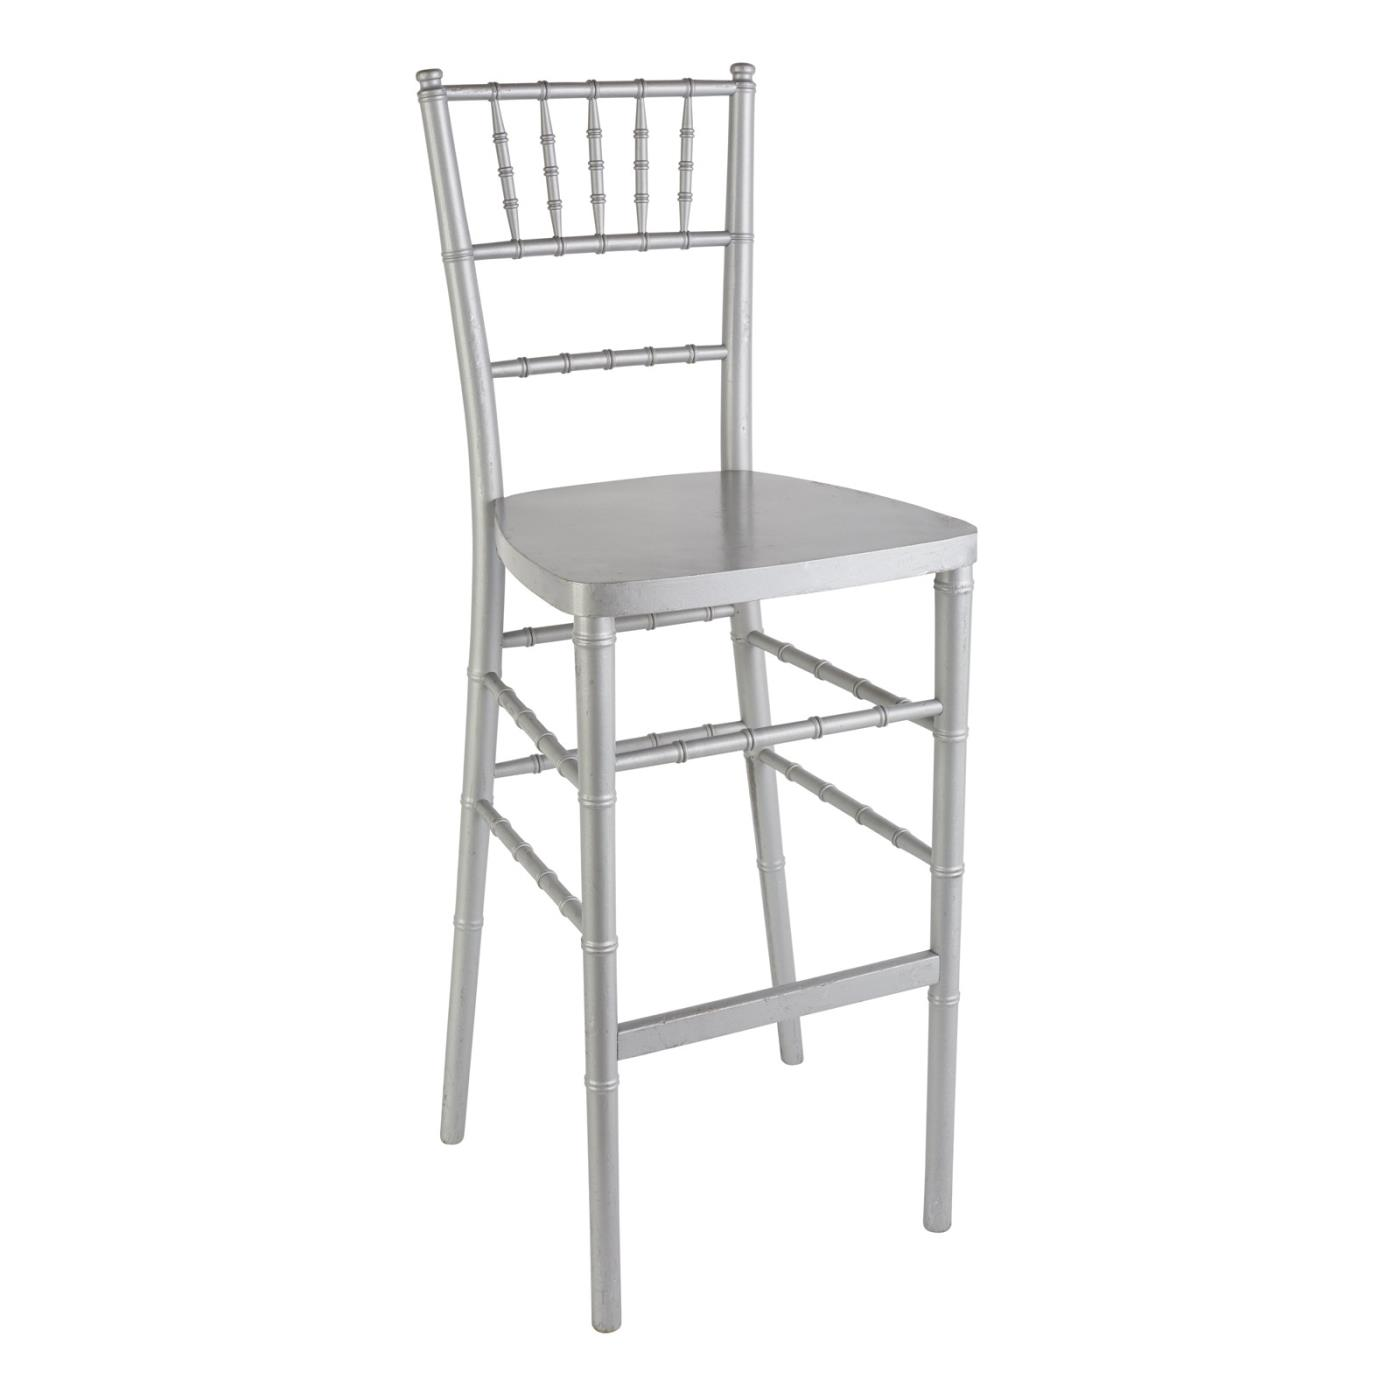 Reception Stool - Silver